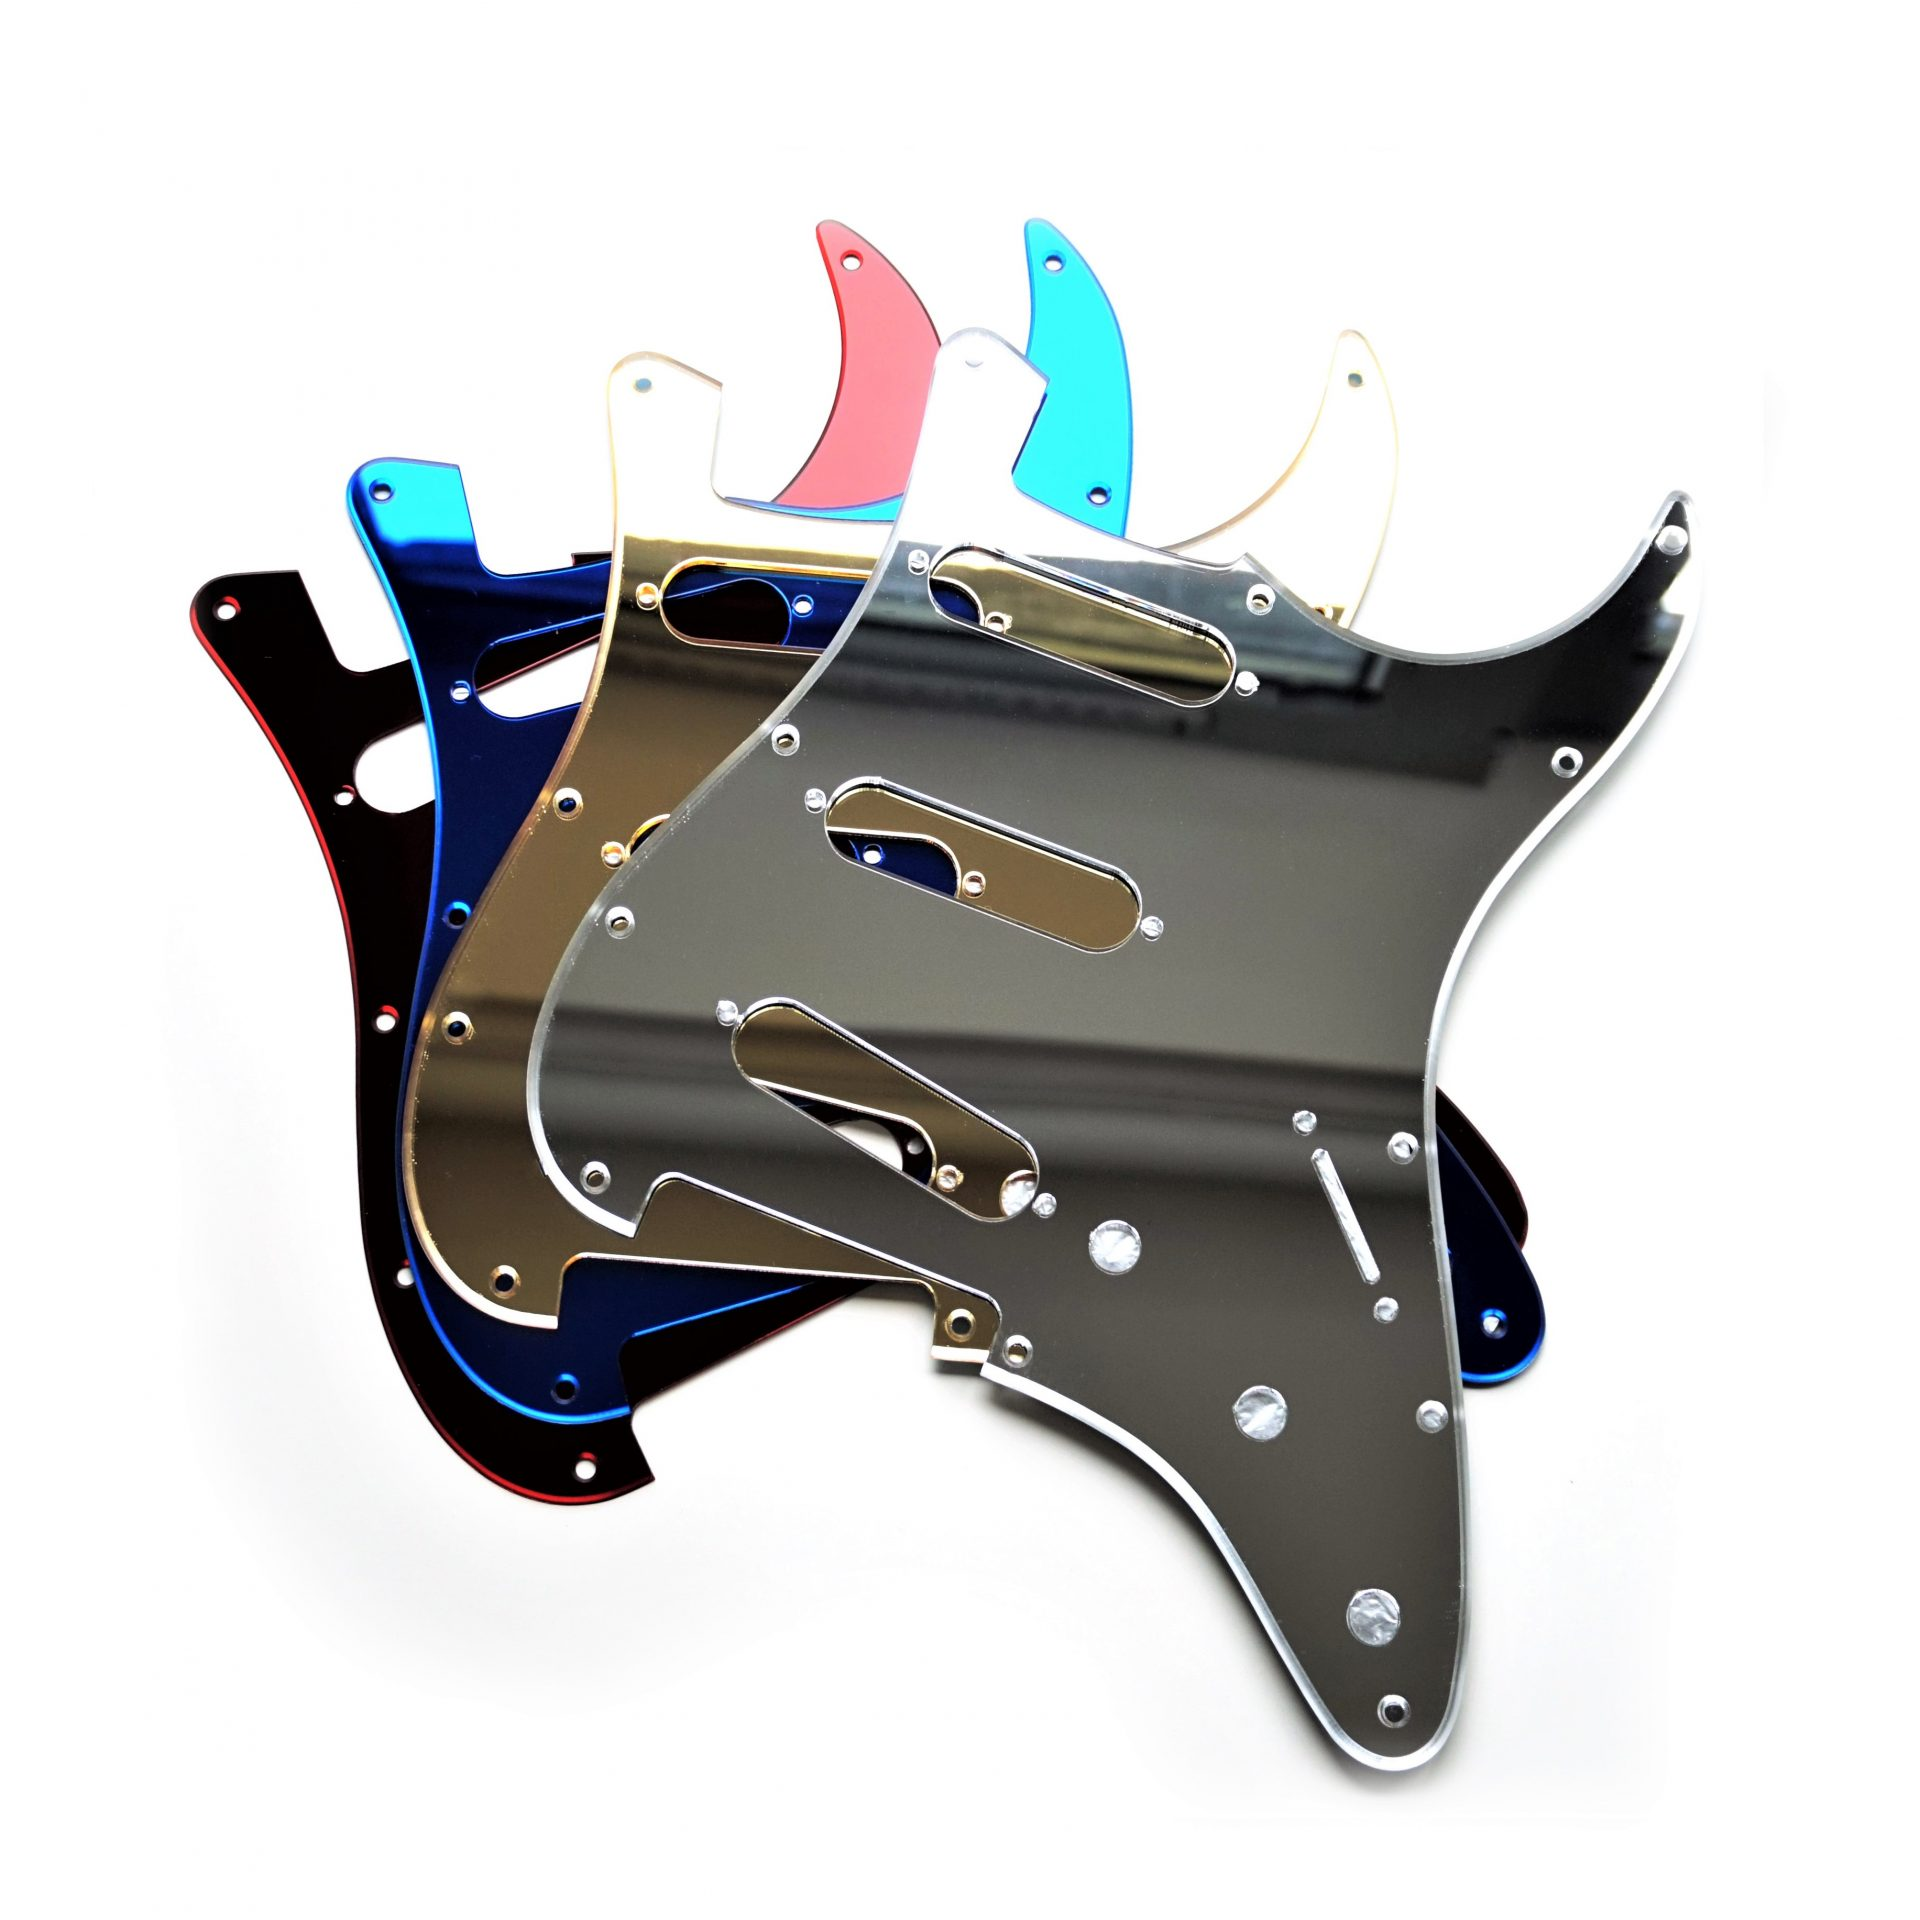 Mirror Stratocaster Pickguard Scratchplate Guitar Anatomy